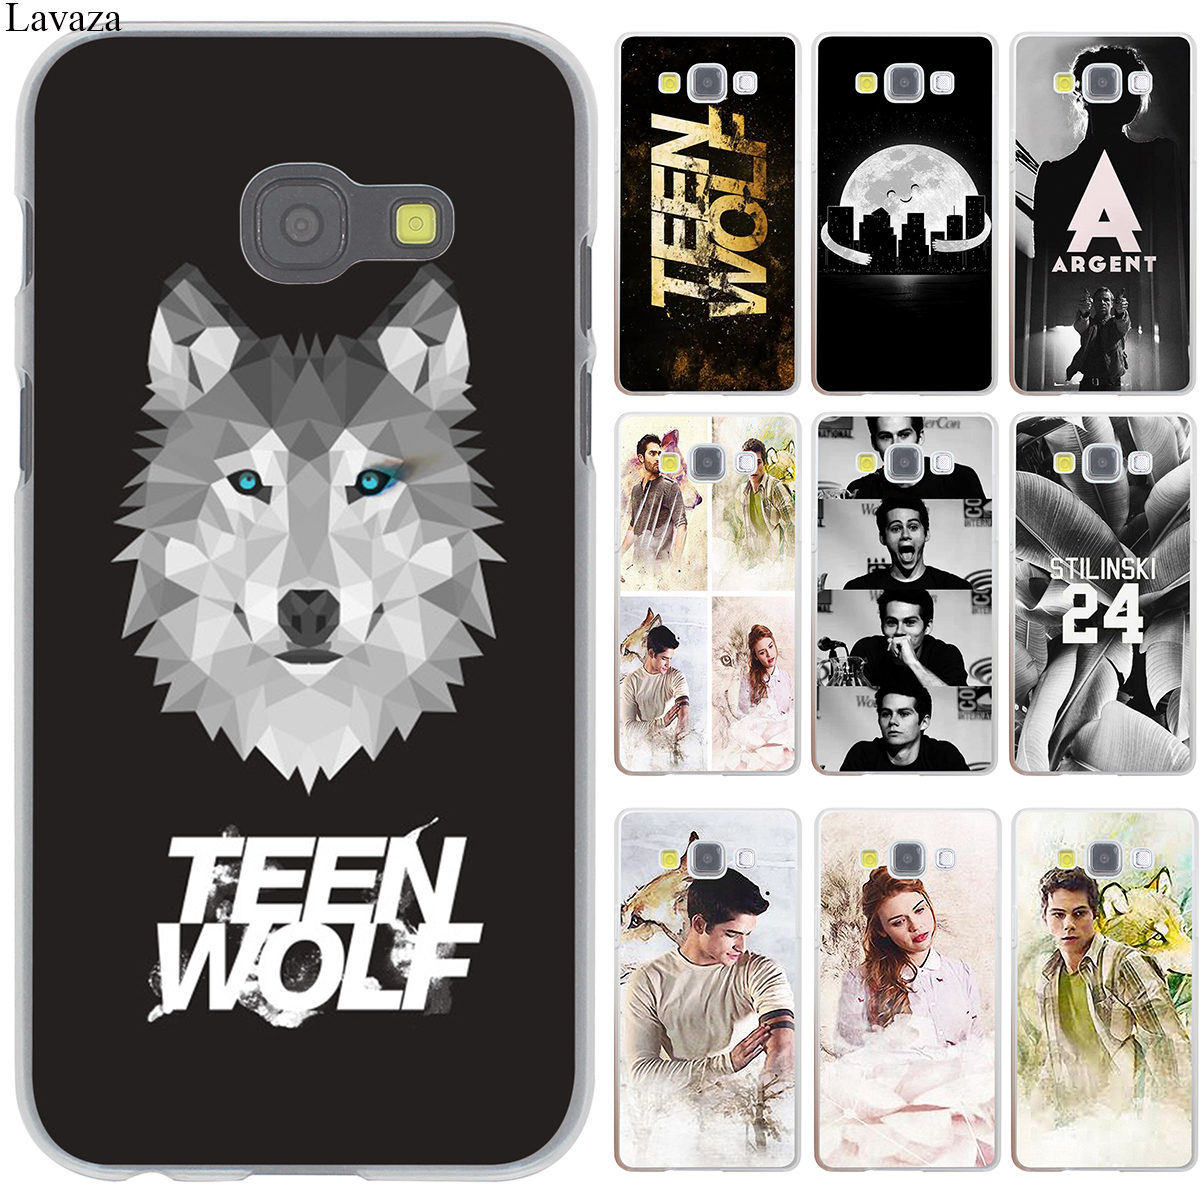 coque teen wolf hard case cover for galaxy a3 a5 j5 2015 2016 2017 j7 j3 j5 prime note 3 4. Black Bedroom Furniture Sets. Home Design Ideas